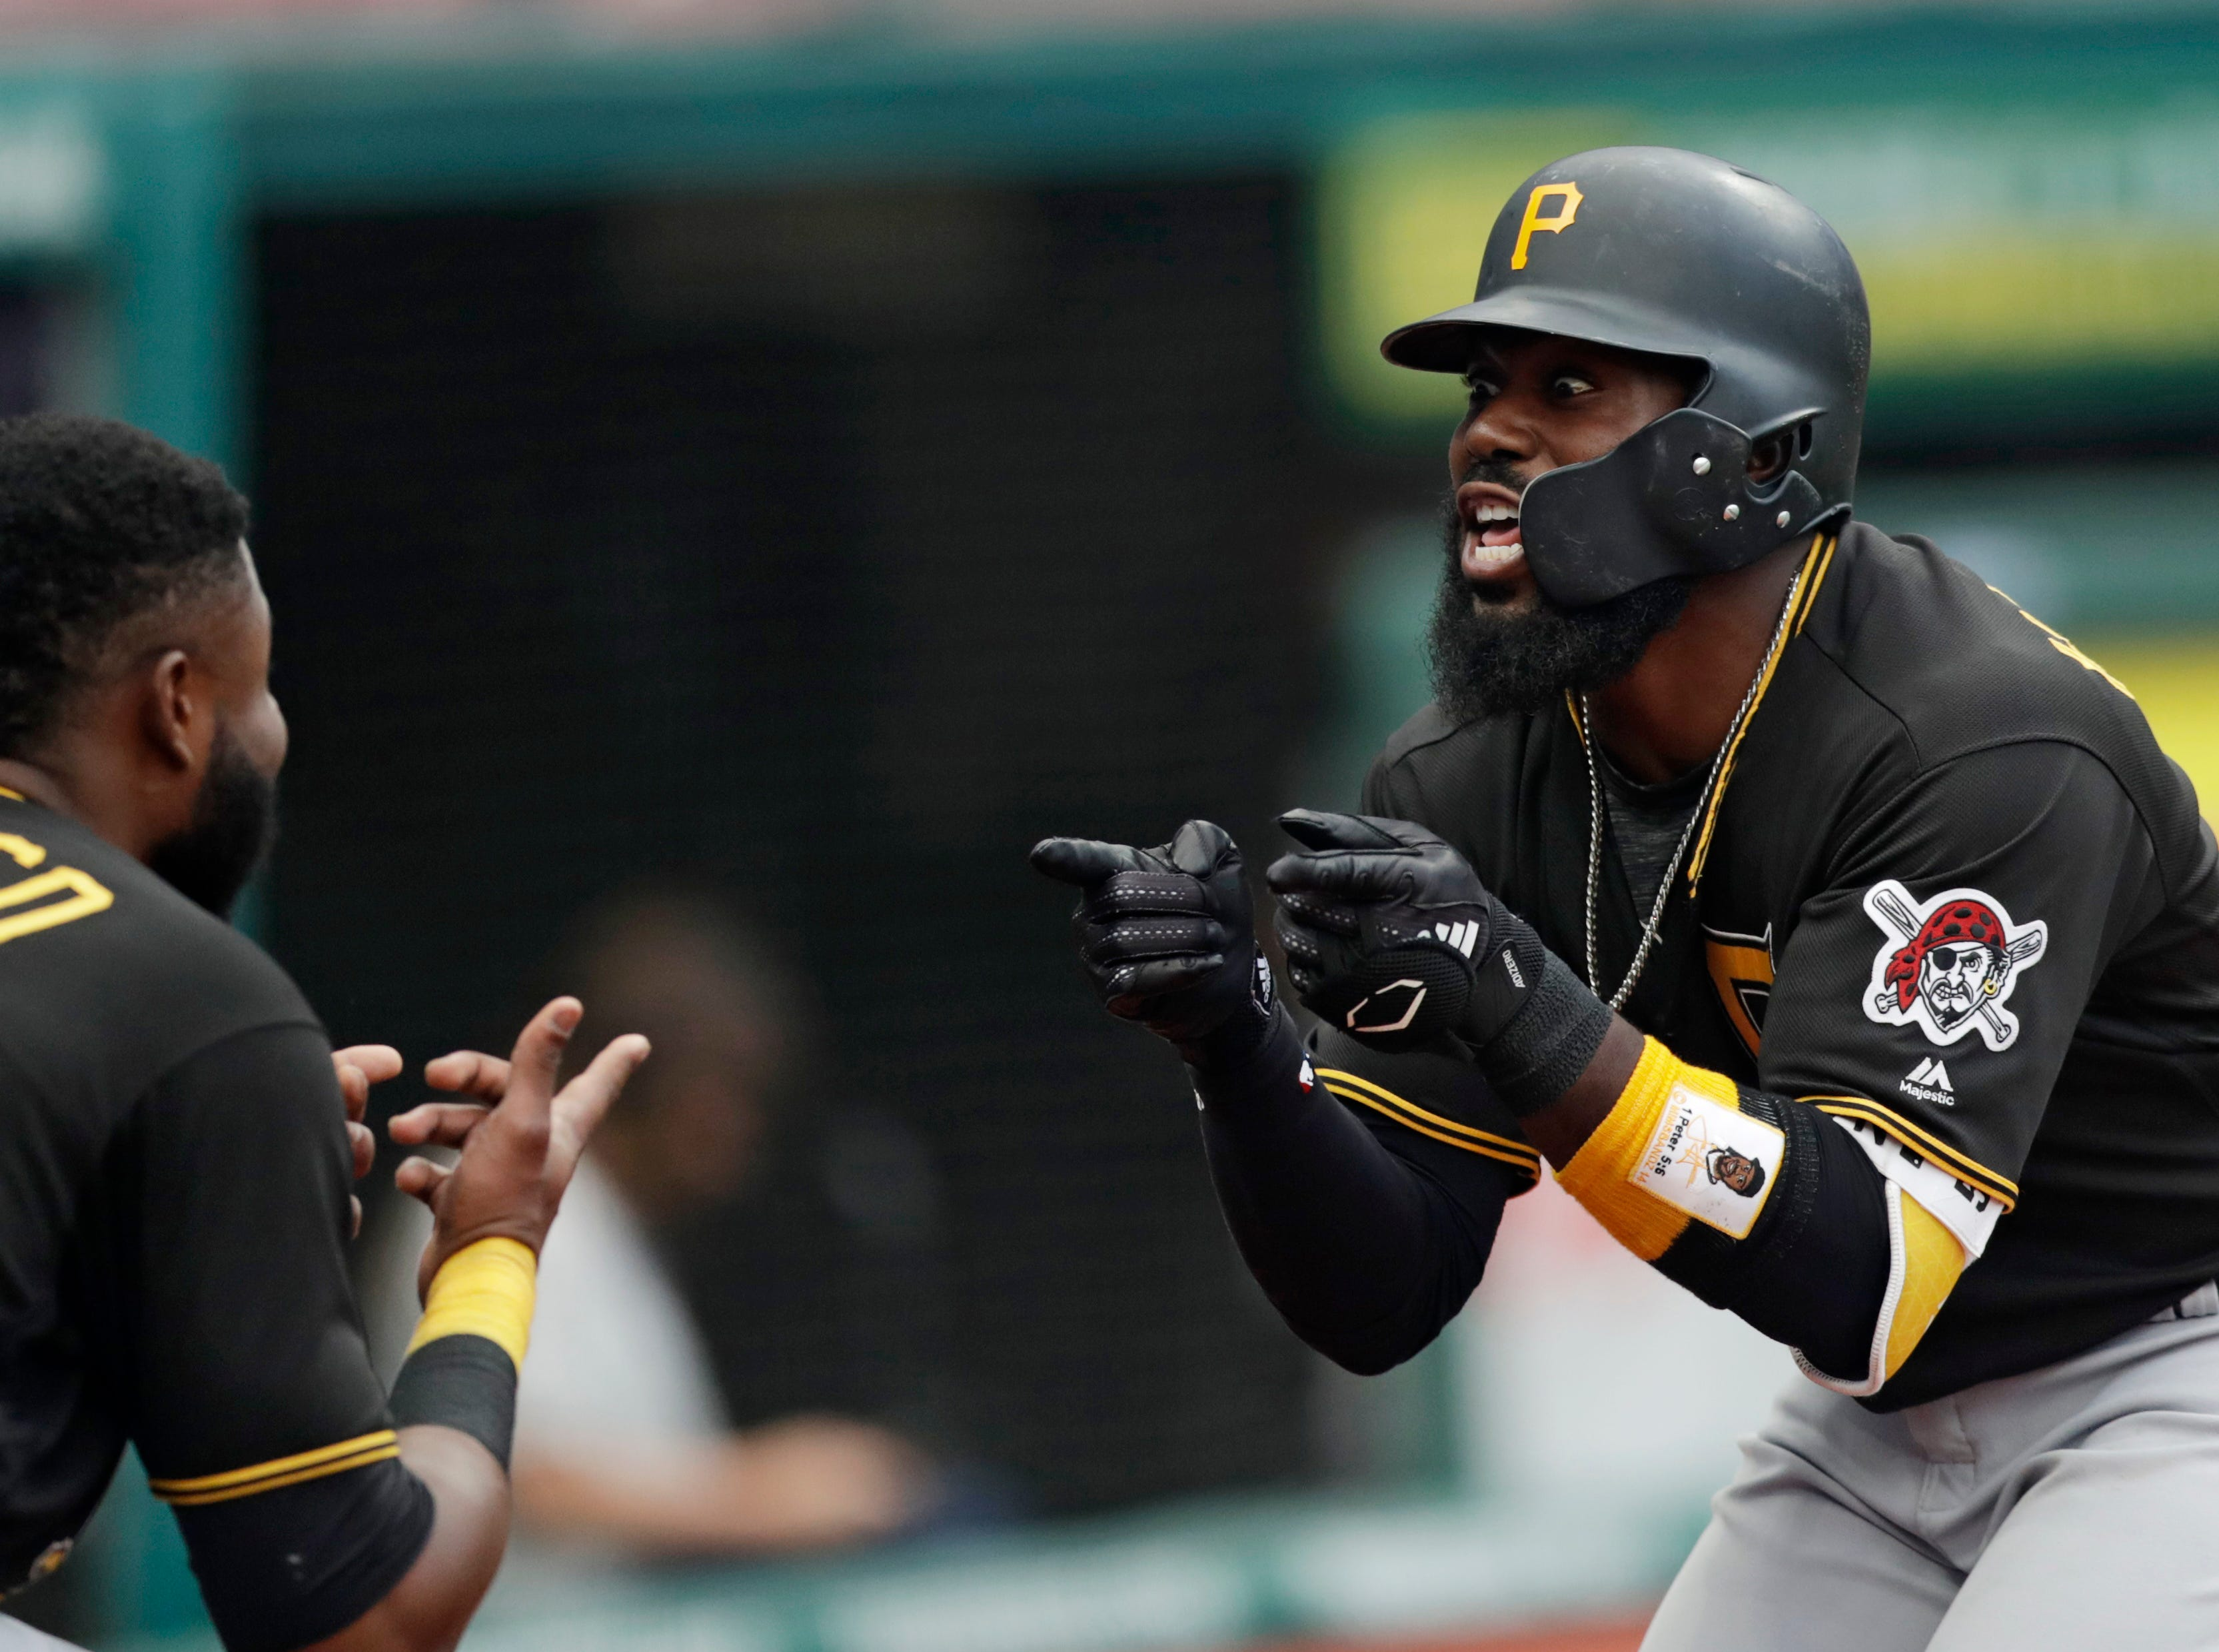 Pittsburgh Pirates' Josh Harrison, right, celebrates with Gregory Polanco after hitting a three-run home run in the second inning of a baseball game against the Cleveland Indians, Monday, July 23, 2018, in Cleveland.